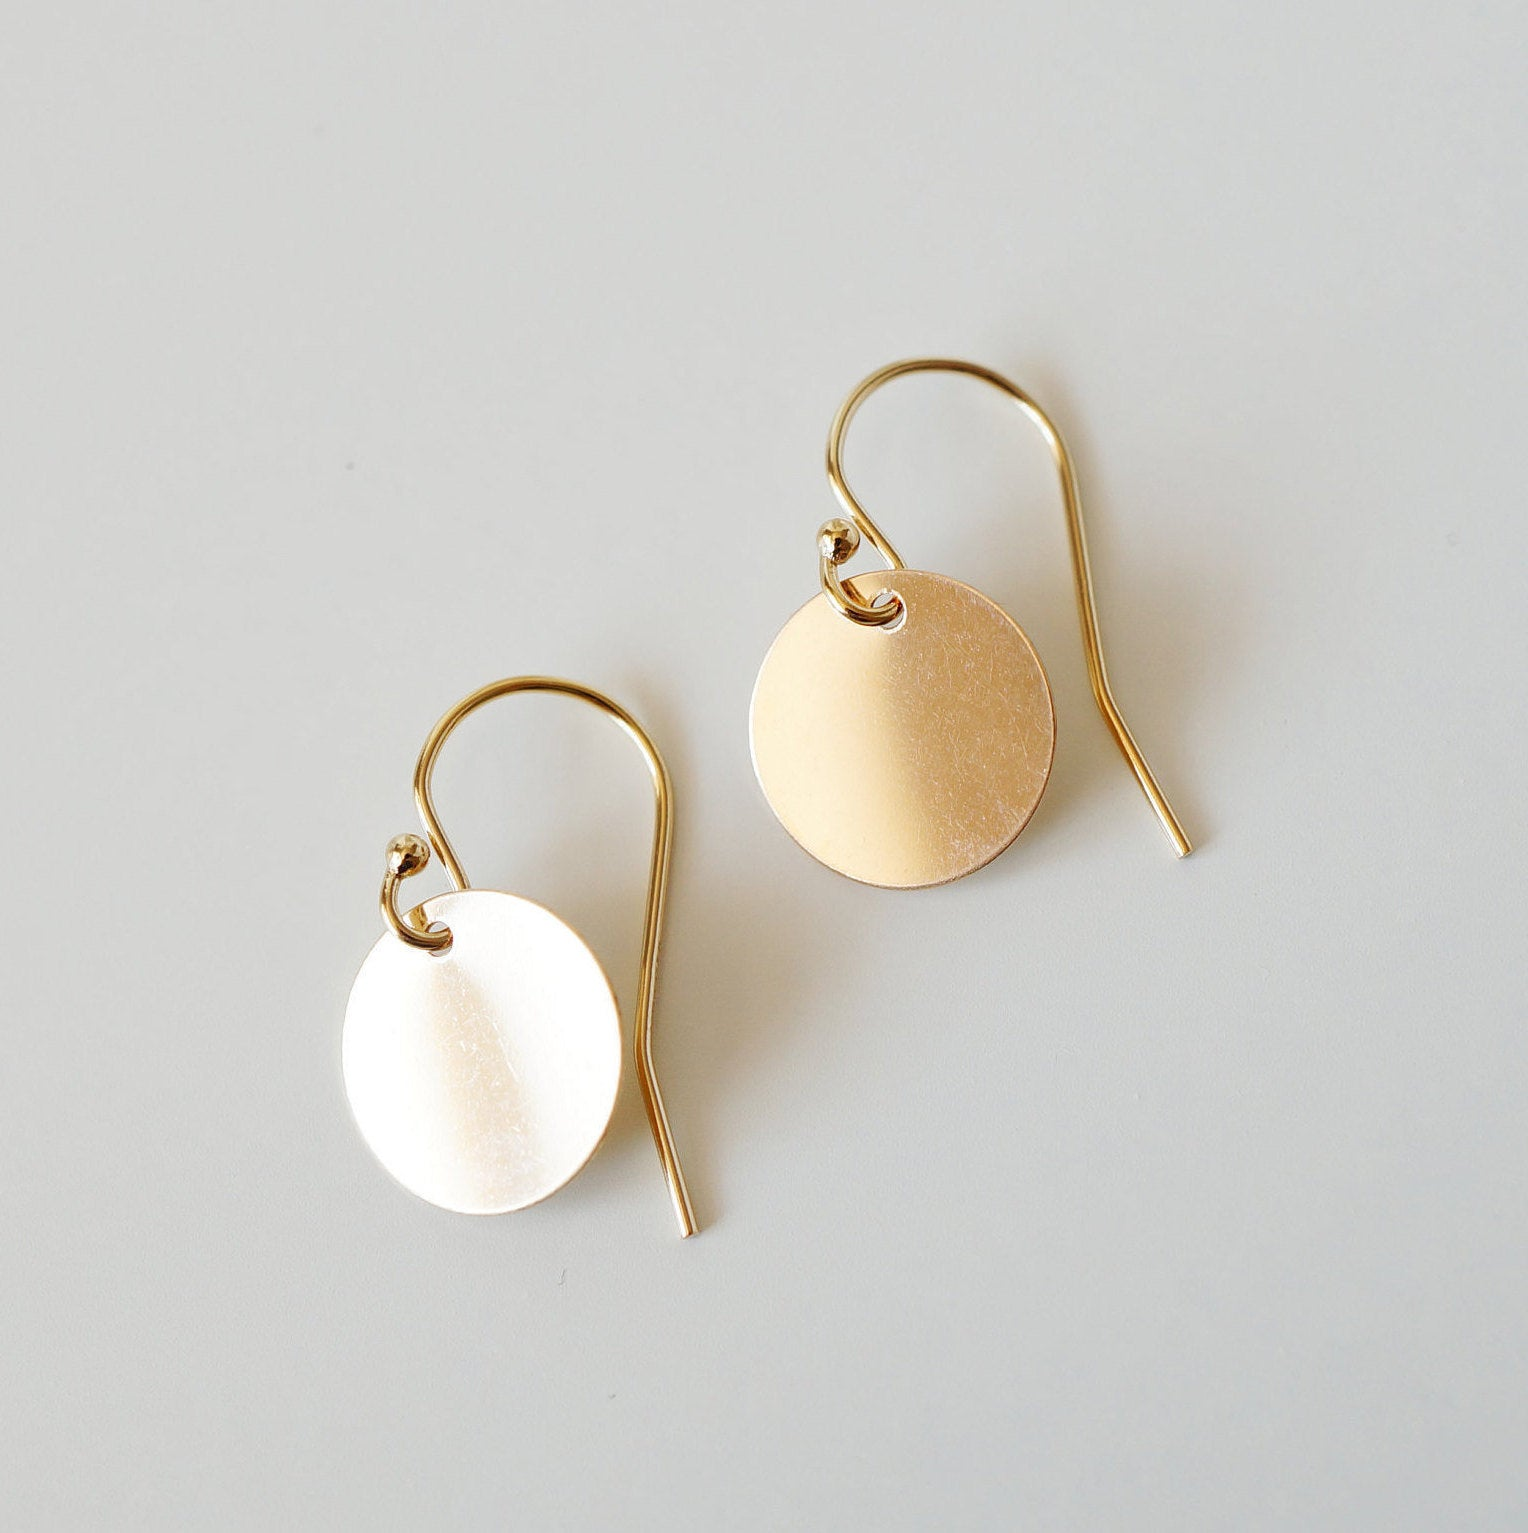 Gifts for sister  Dainty earrings Gold Coin Circle Earrings on 14K Gold-filled wires Melanie